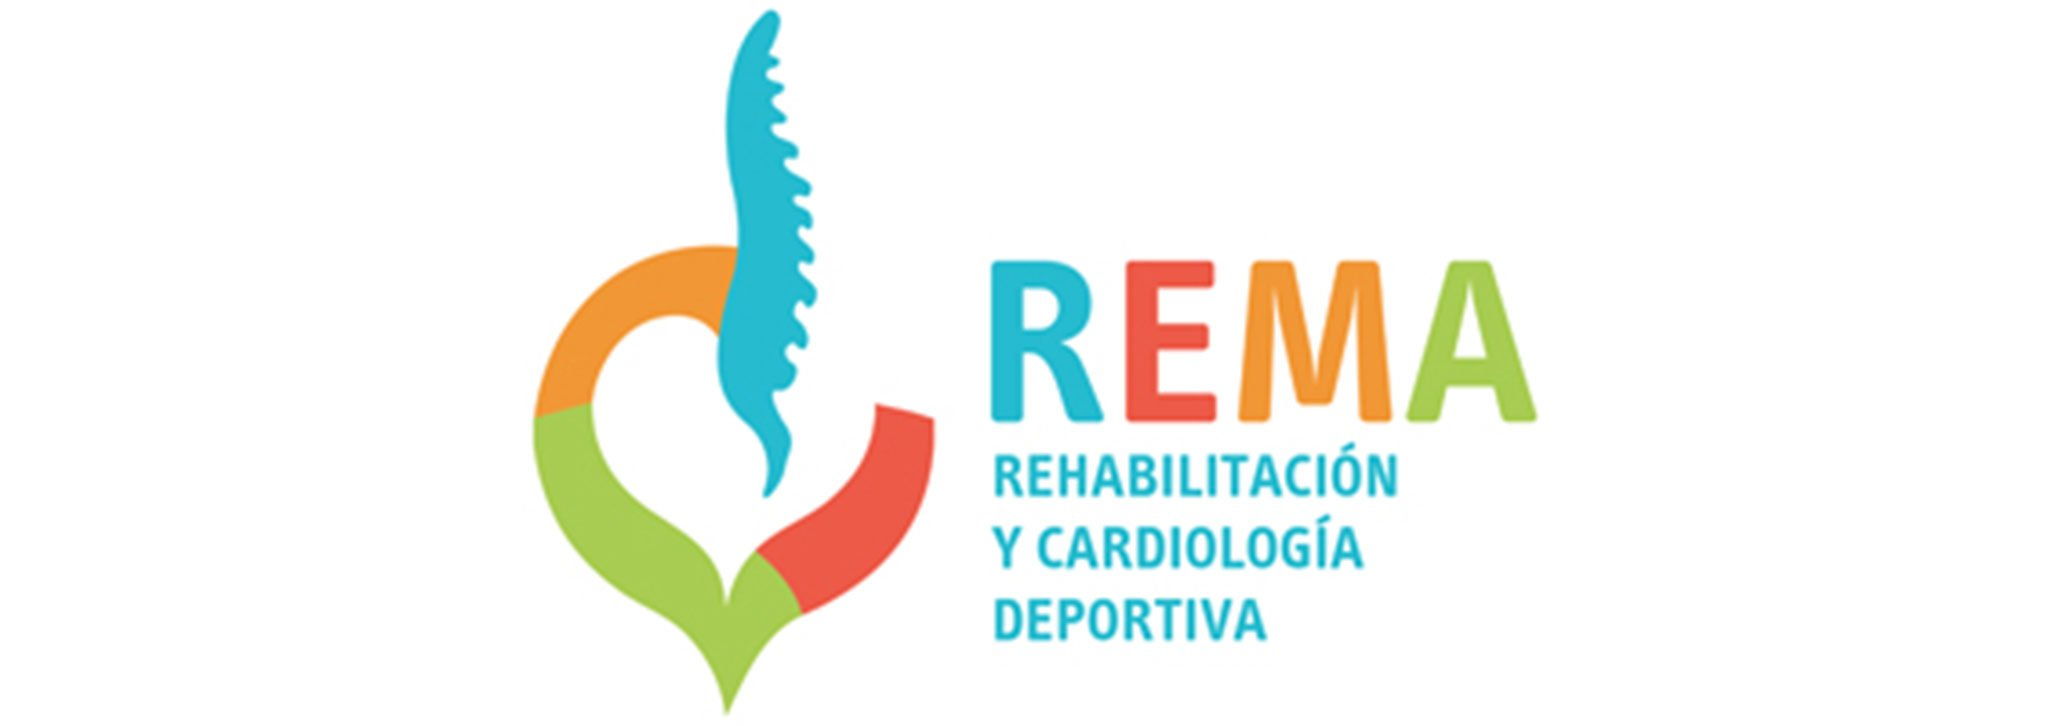 REMA logo (High Marine Rehabilitation)